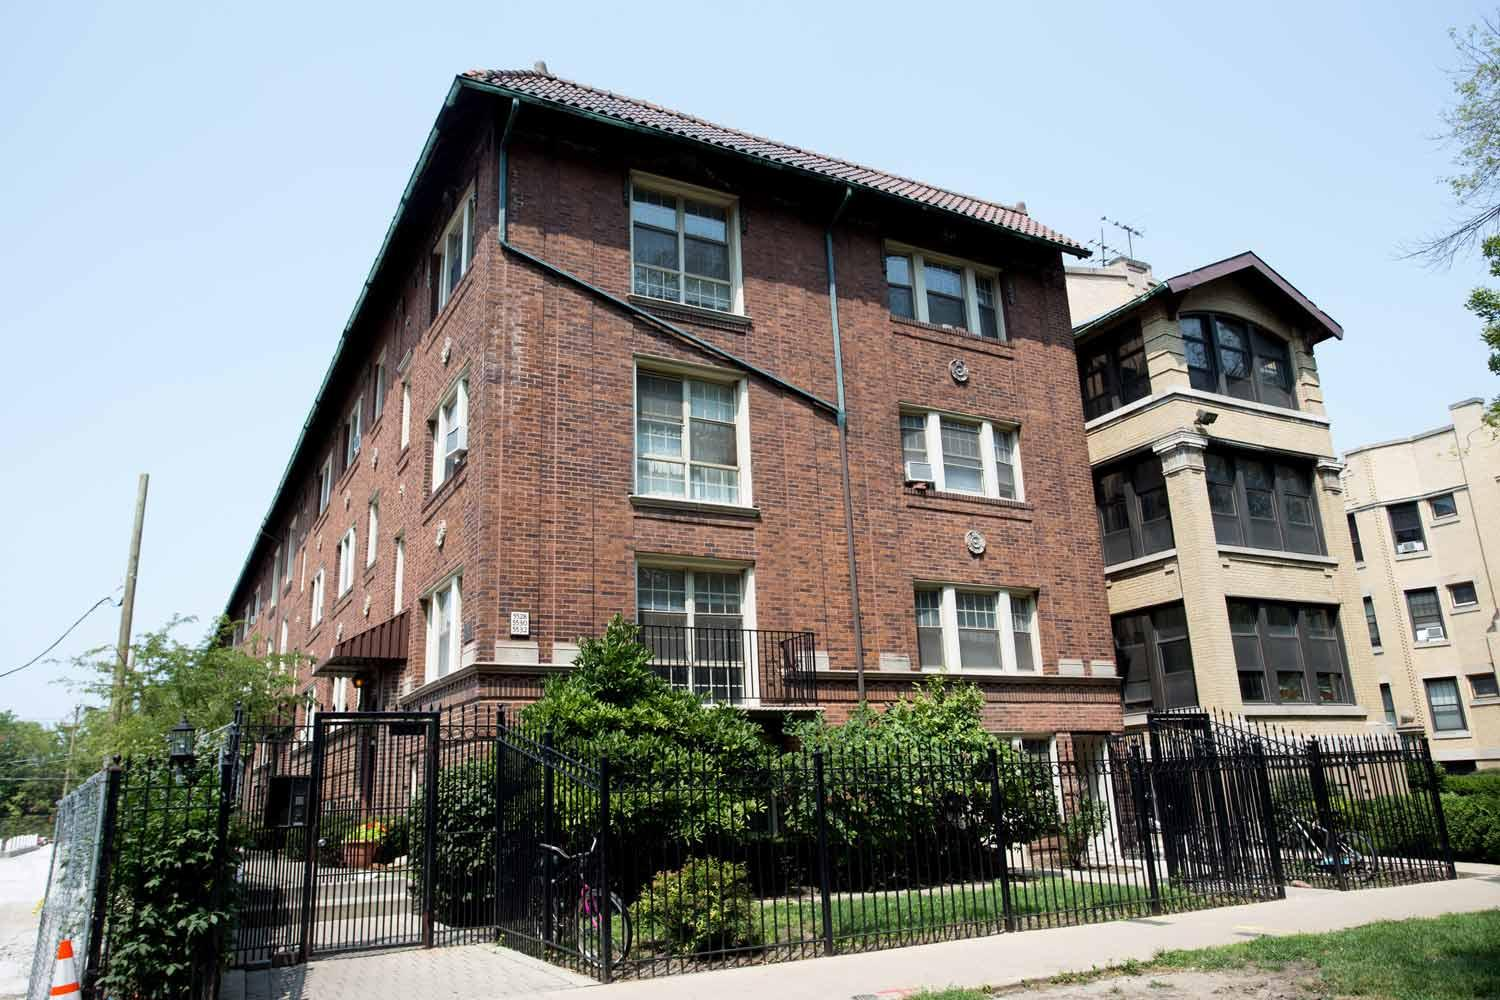 Studio apartment 5528 South Cornell Apartments photo #1